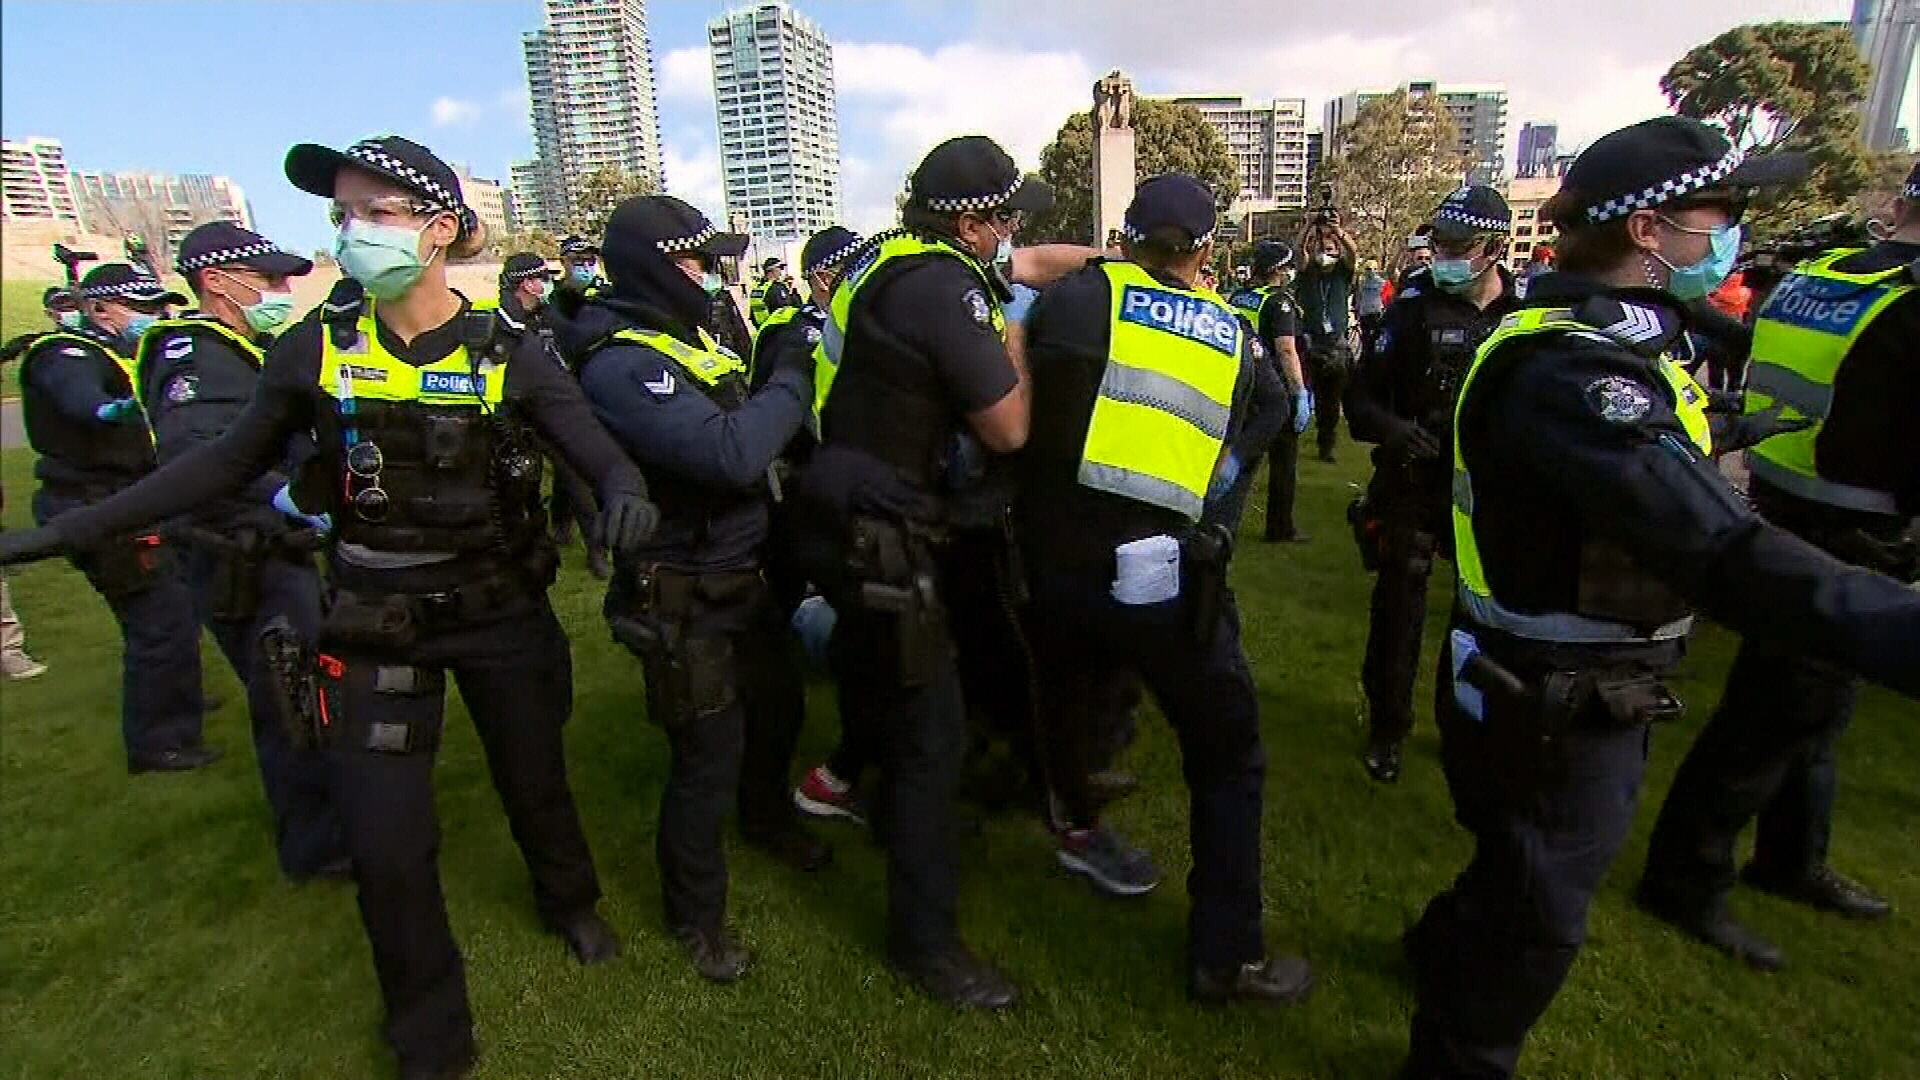 Police brace for anti-lockdown protests third weekend in a row